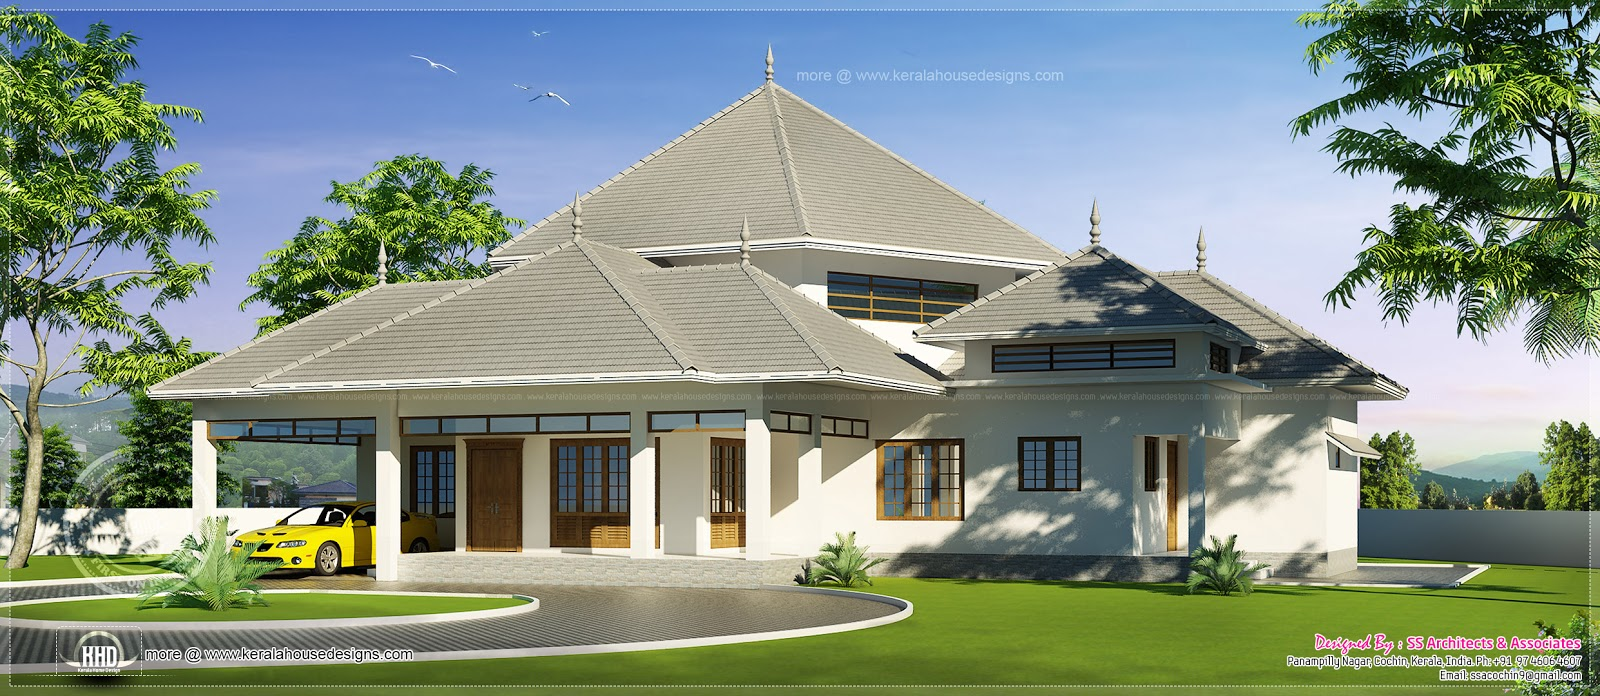 House Plans And Design Modern House Roof Plans